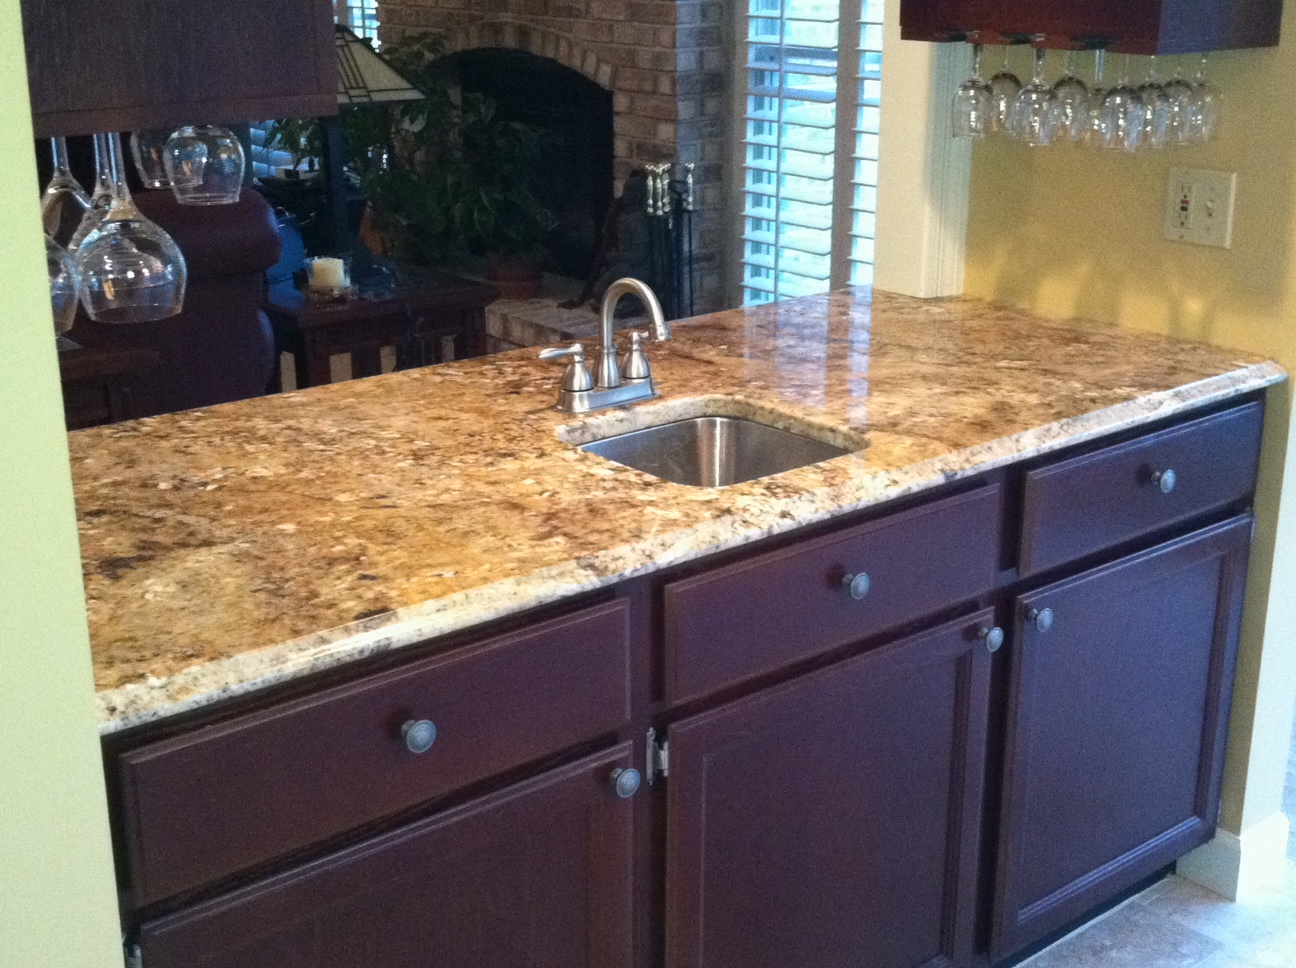 Granite Nilo River Countertops Fabricated And Installed By Stonetrends Llc Onetrendsllc